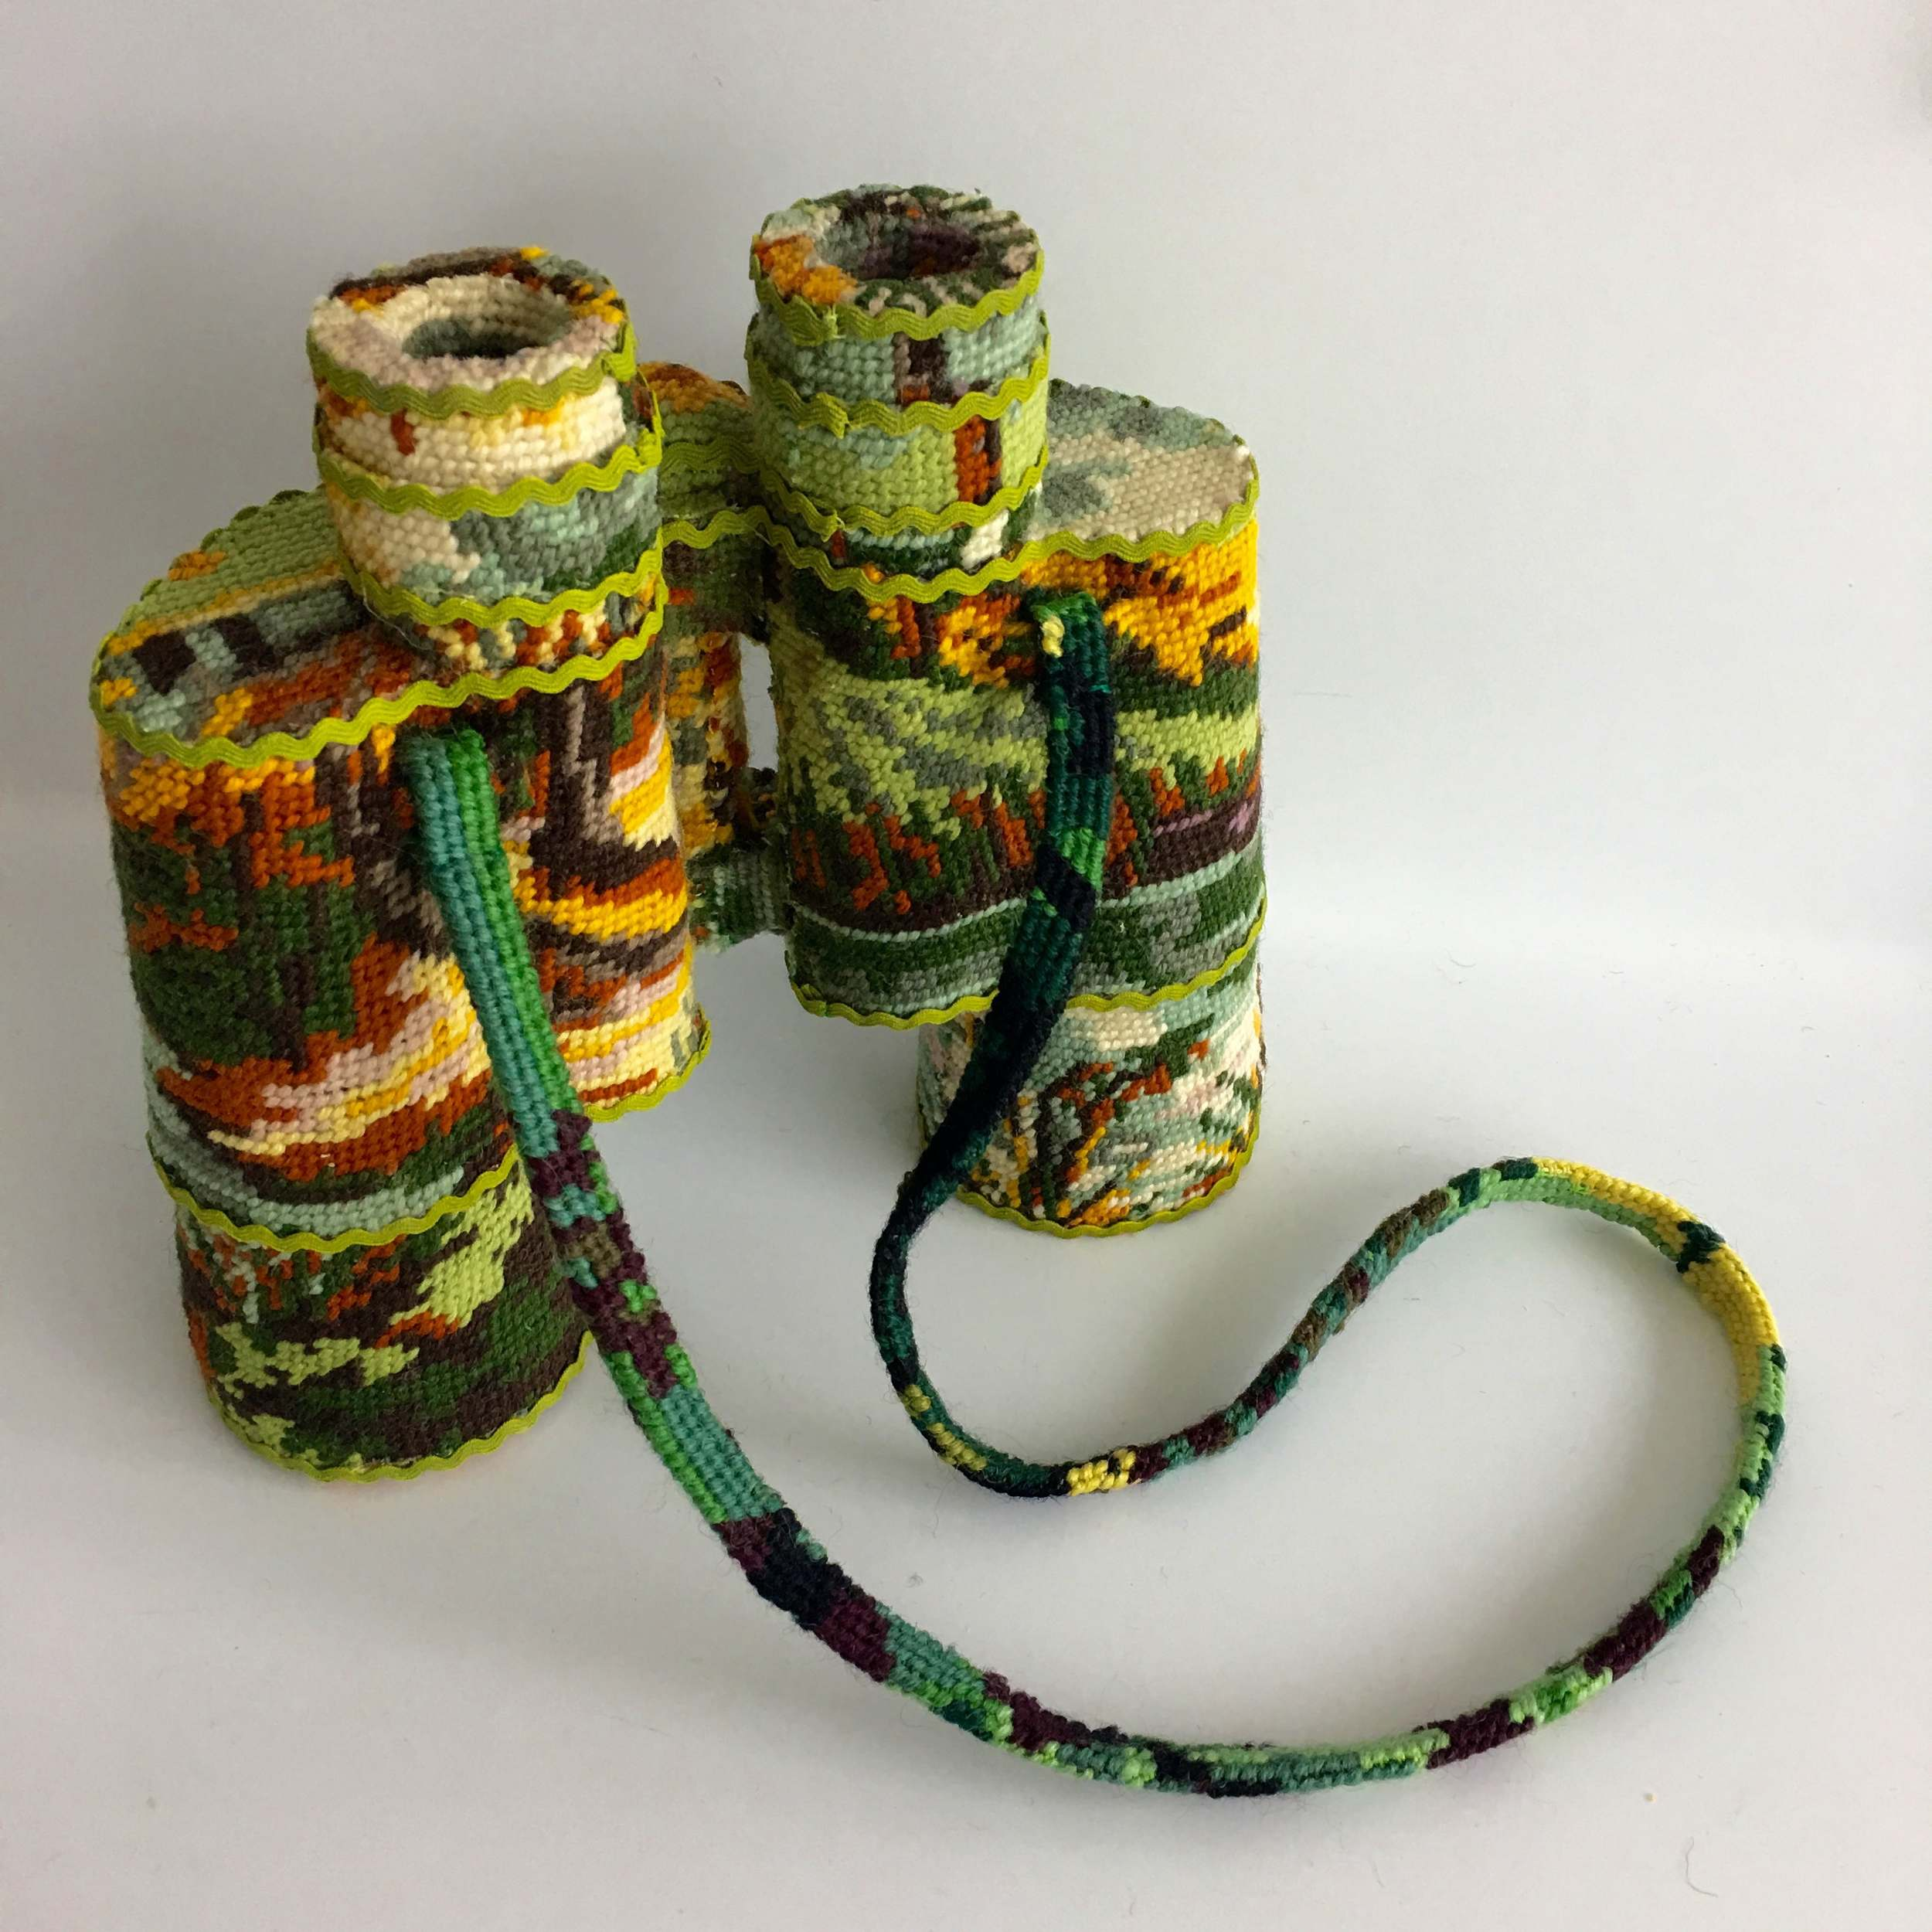 New Domestic Objects Wrapped in Needlepoint Scenes by Ulla Stina Wikander